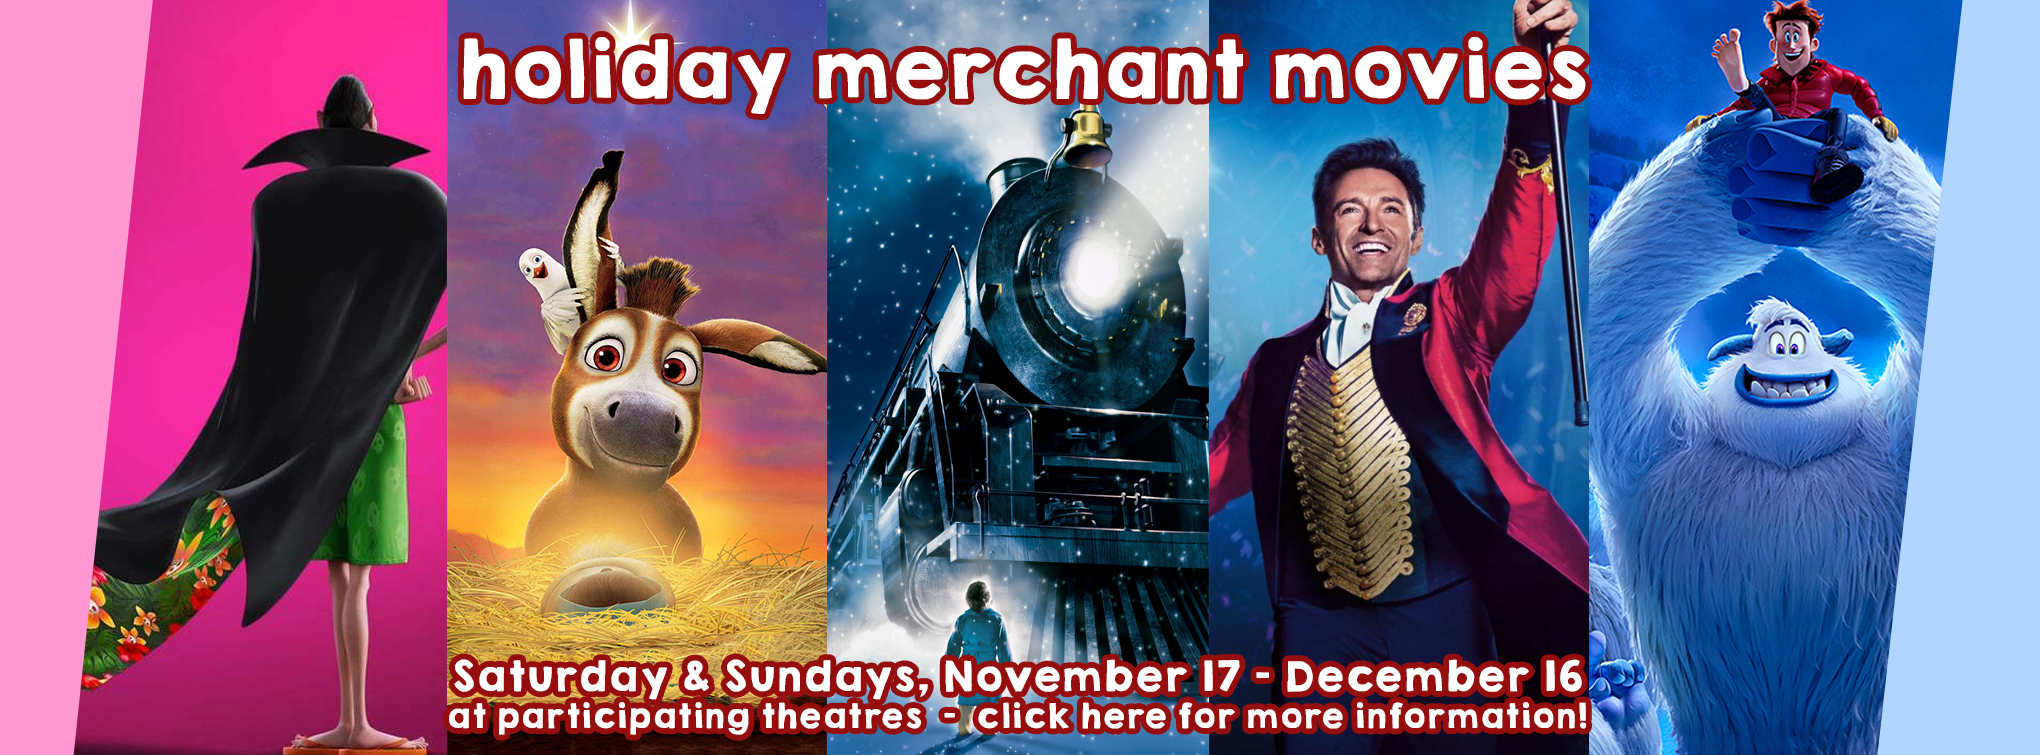 Slider image for our free holiday merchant movies - click here for more information